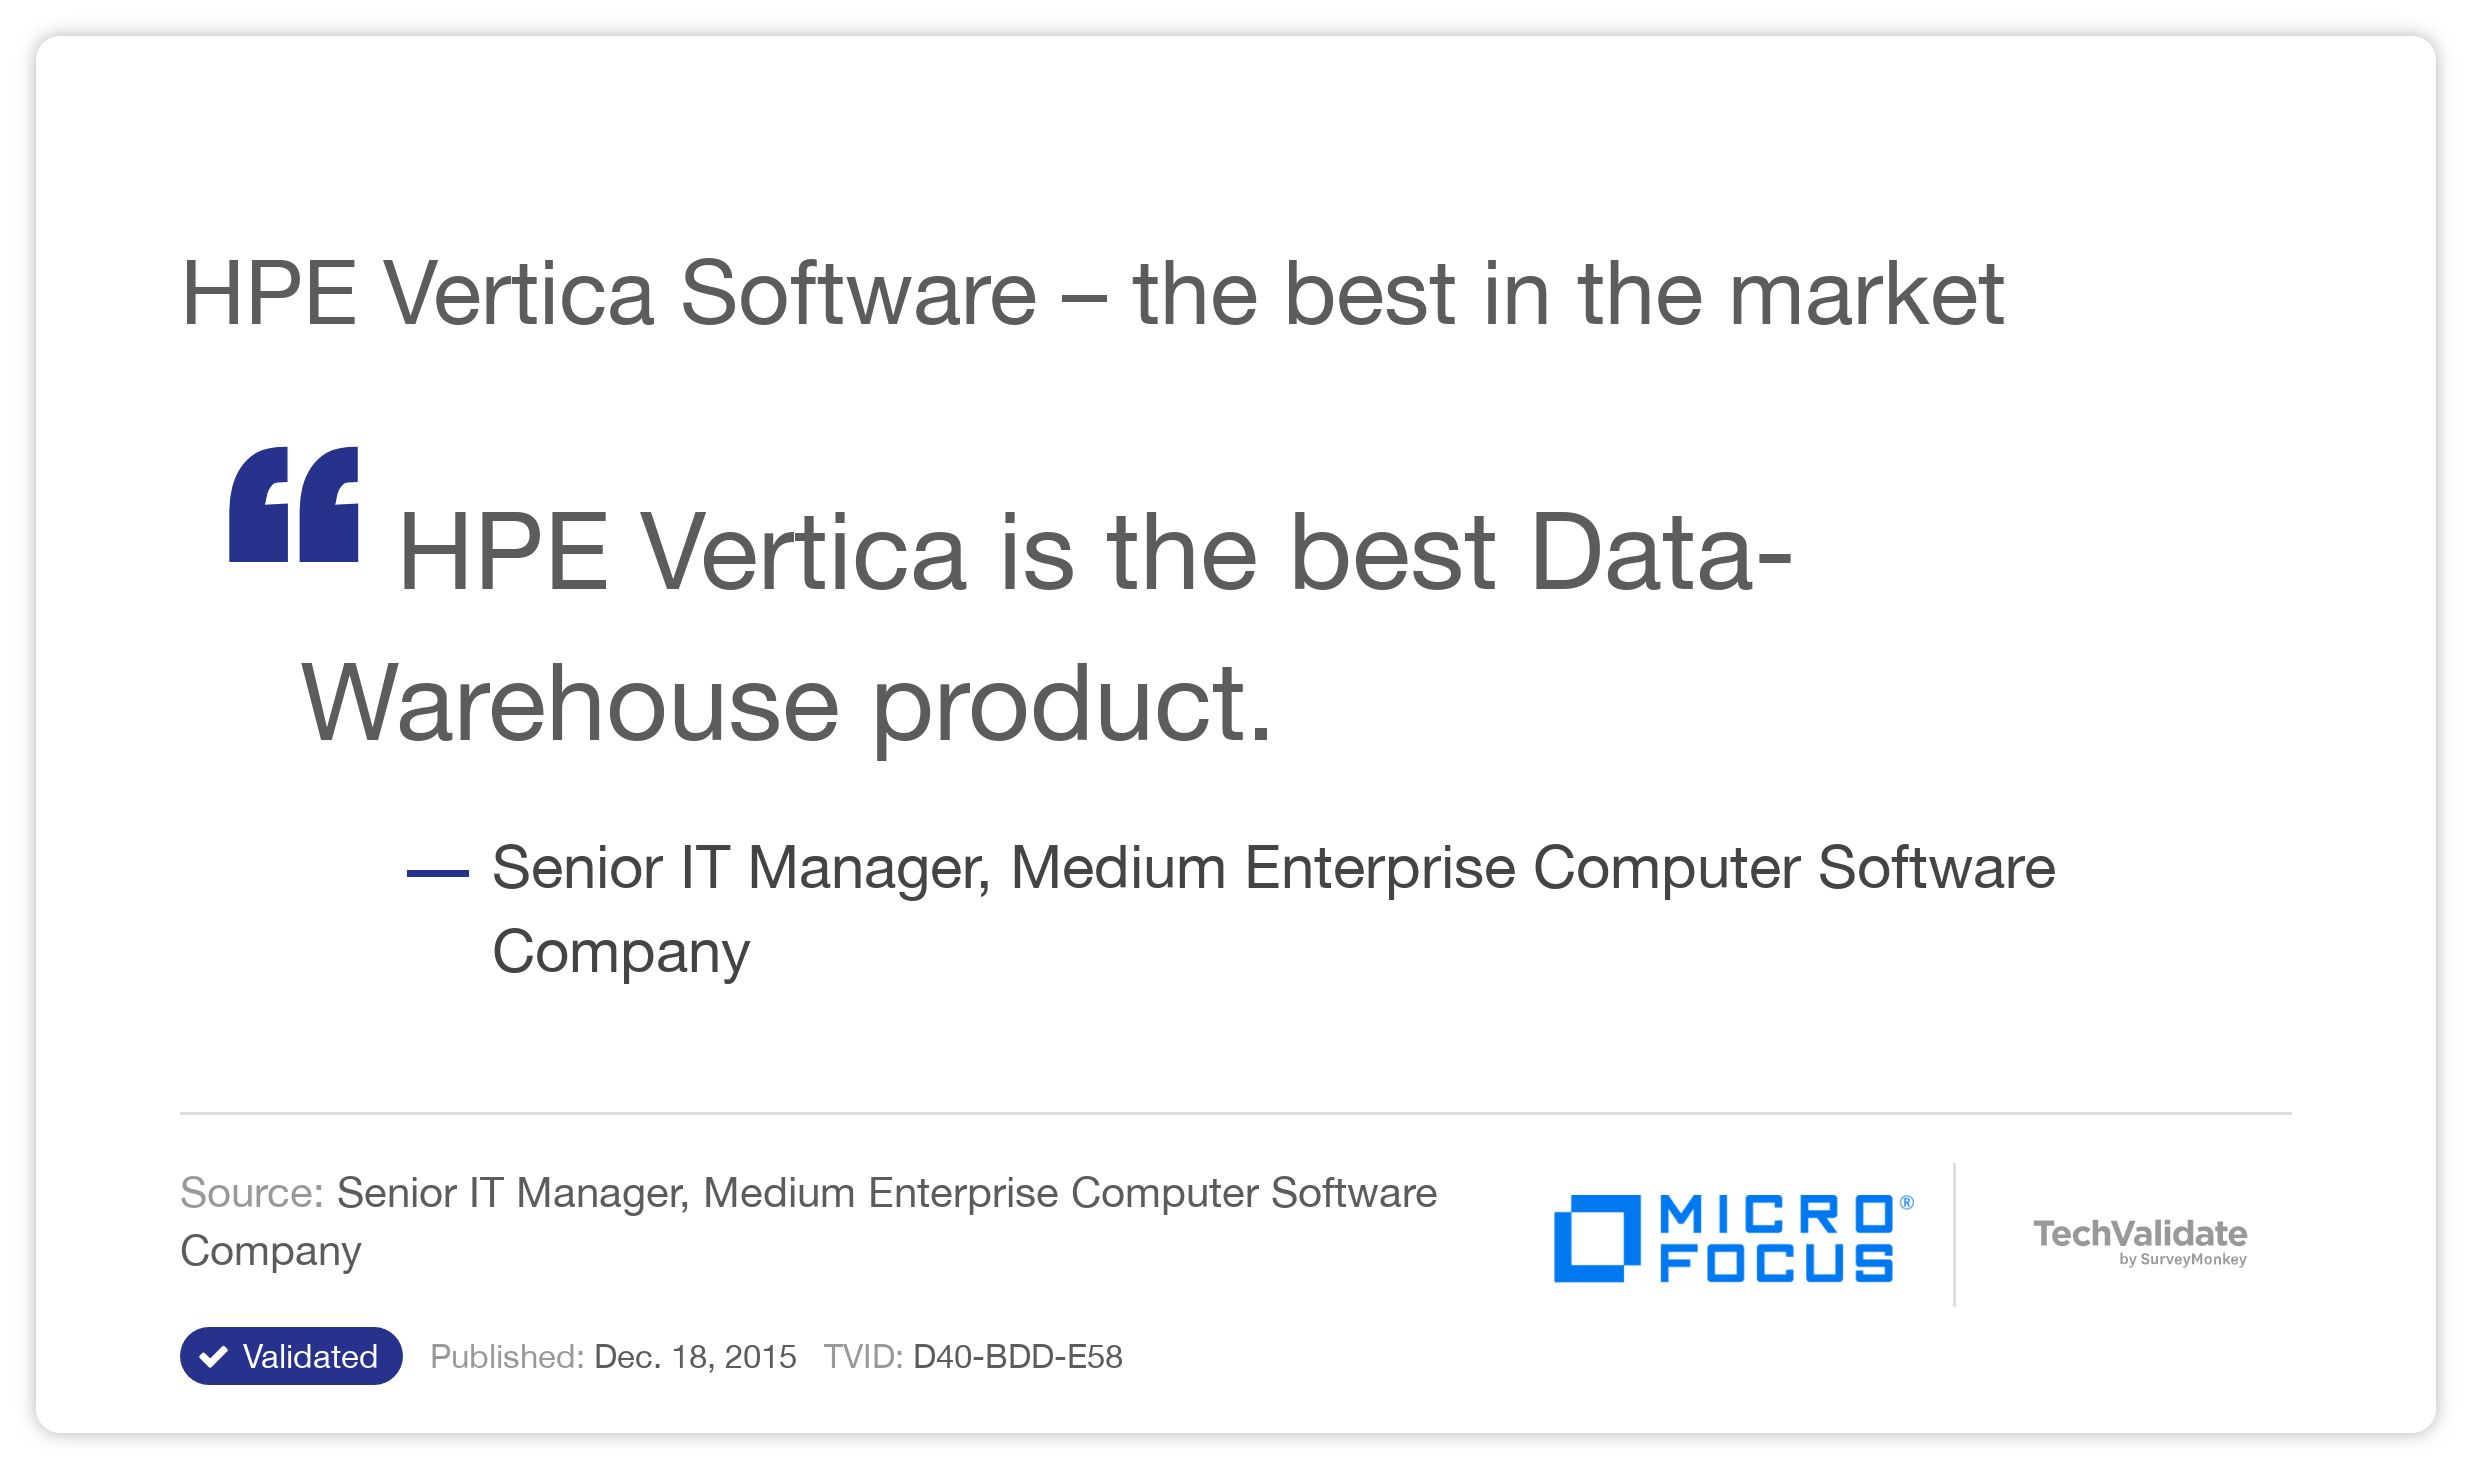 HP Vertica Software - the best in the market